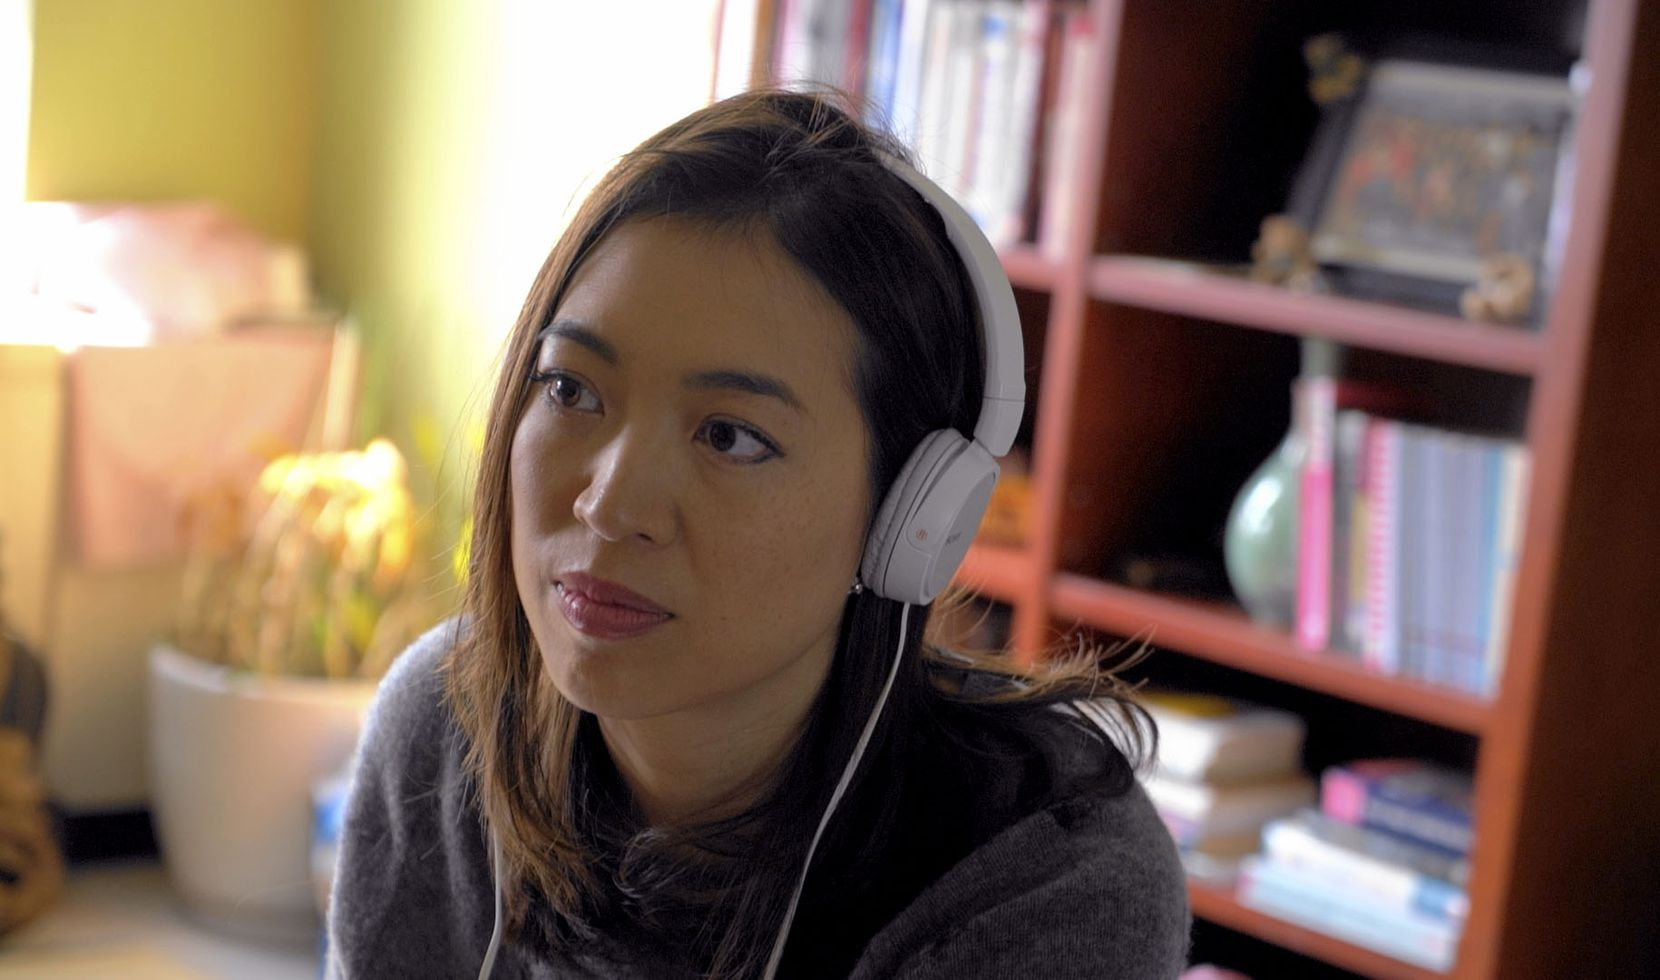 Elise Hu, NPR reporter, conducts an interview from her apartment in Seoul, South Korea.